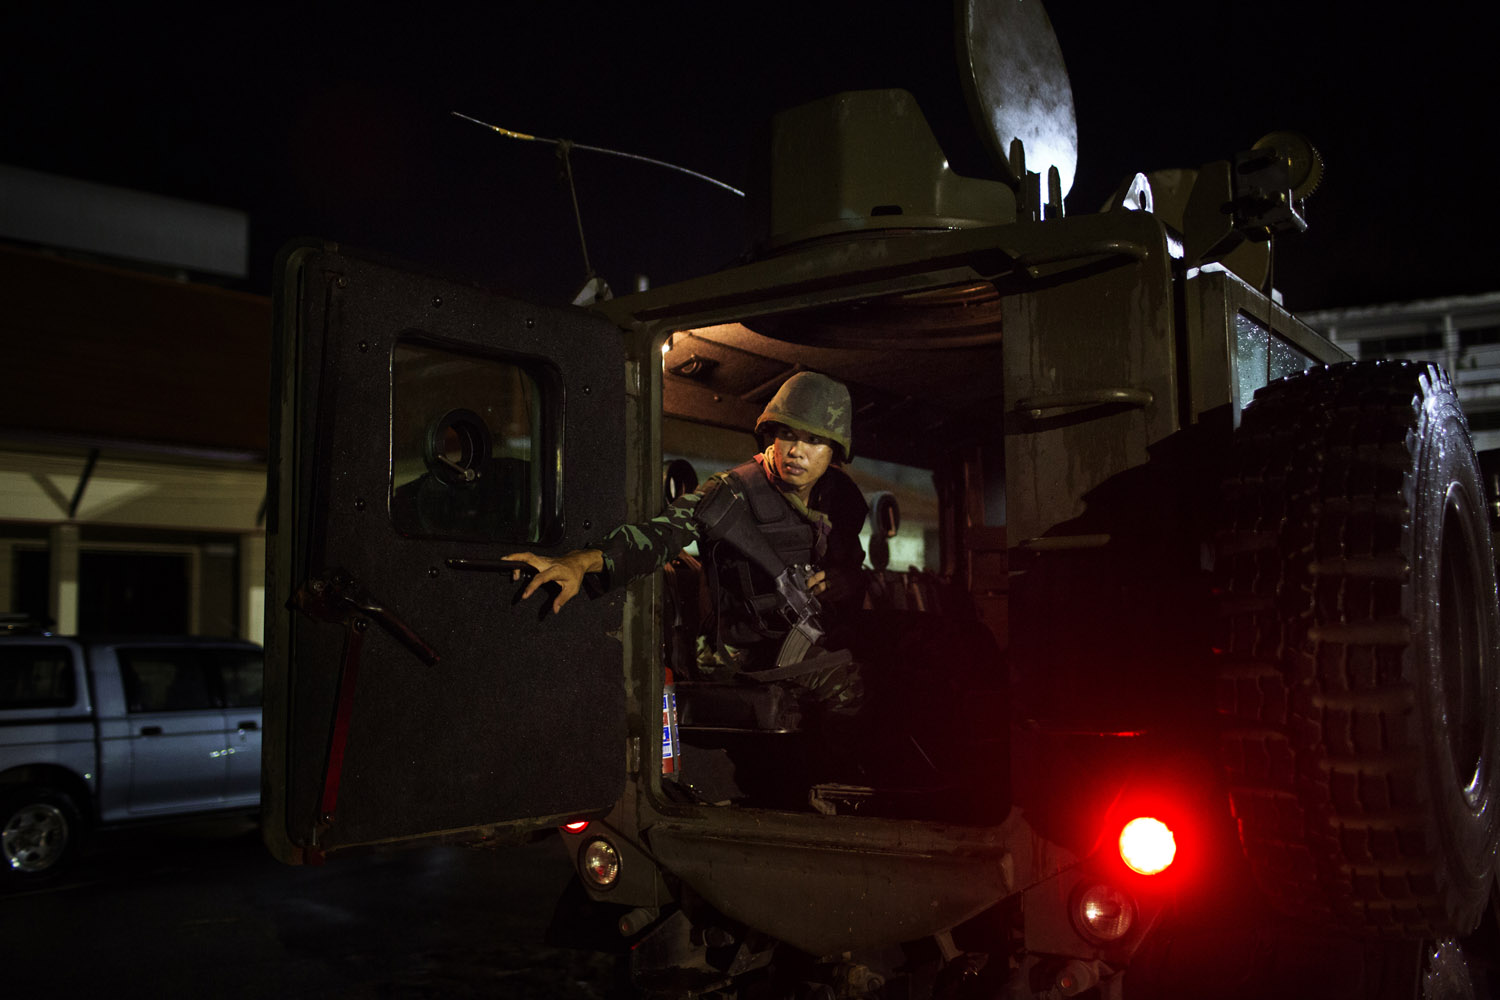 A soldier from the 23rd Pattani Battalion of the Thai Army closes the door of an armored troop carrier during a patrol in Pattani, Southern Thailand.